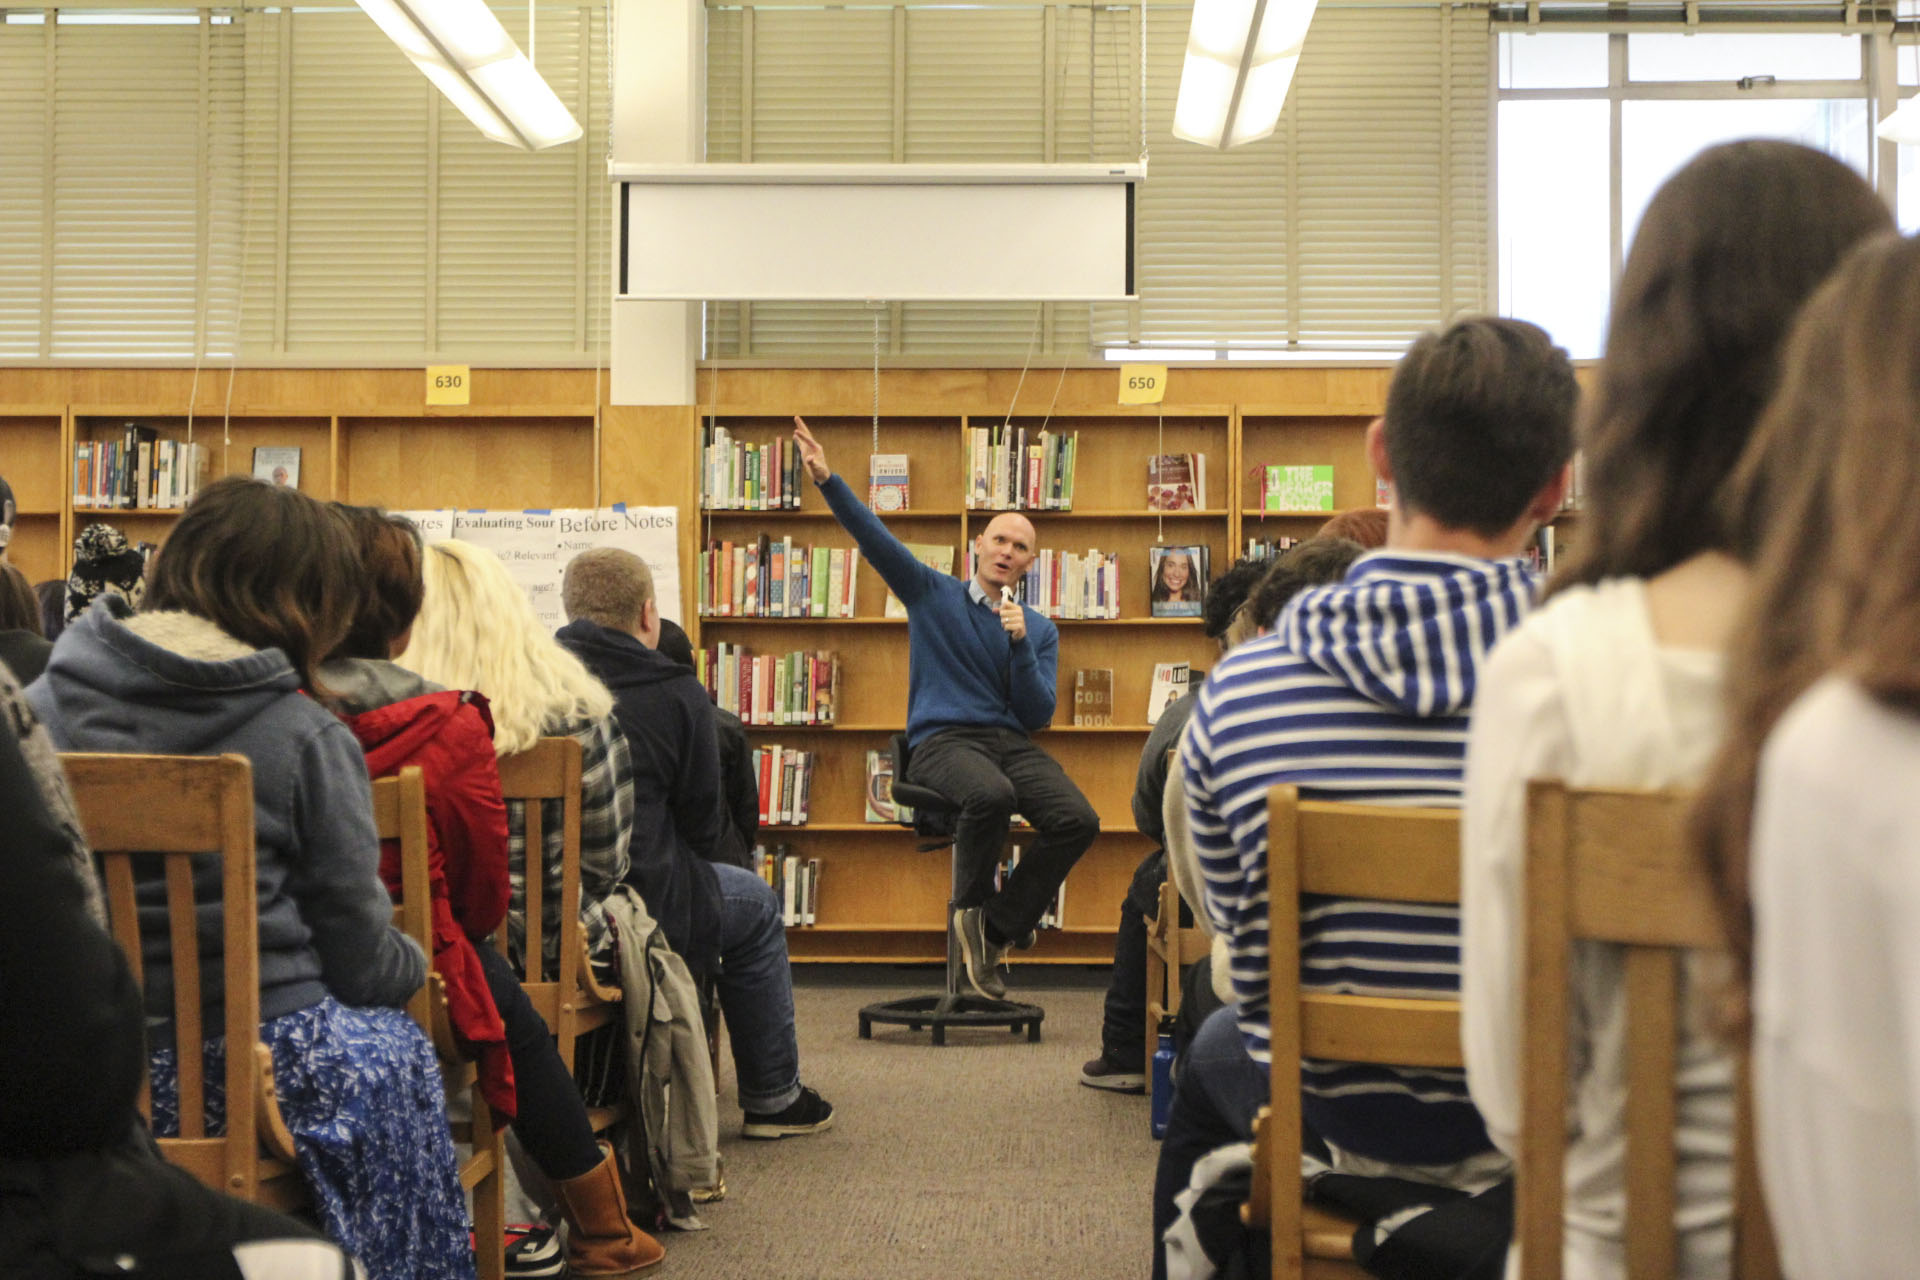 Image Credit: Portland Literary Arts. Anthony Doerr gives his presentation to a group of Portland middle school students.